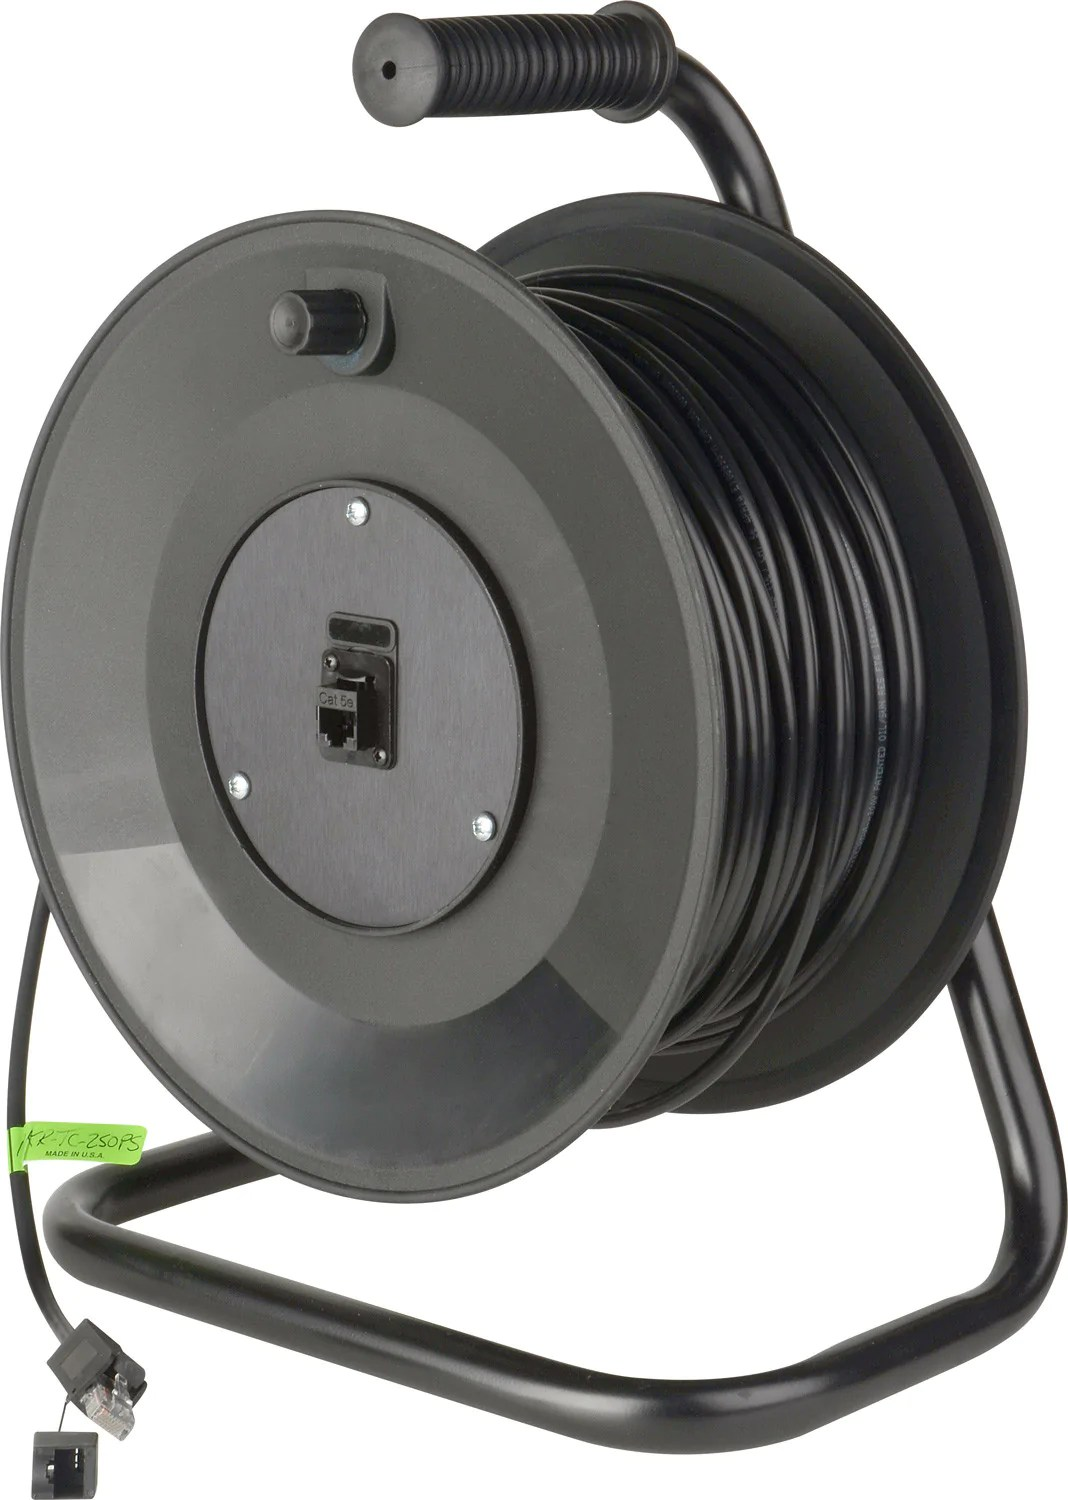 buy cable reel connect n go reel belden 7923a cat5e with pro shell connectors 250ft [ 1068 x 1500 Pixel ]